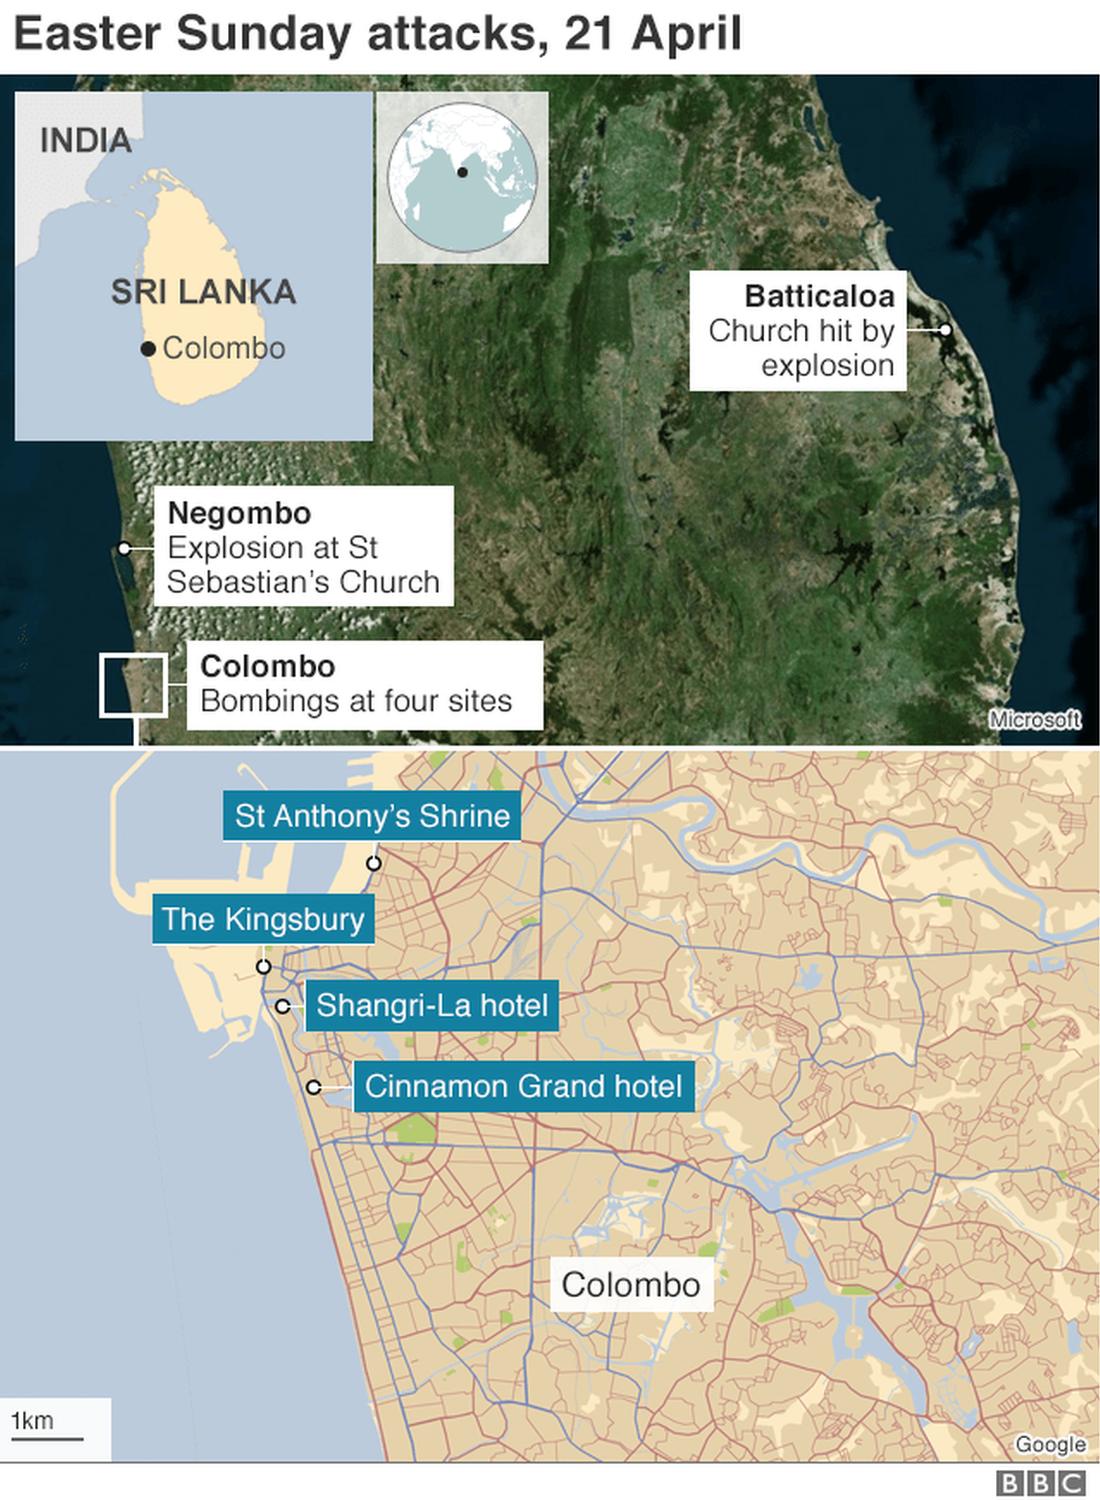 Graphic showing show terror attacks unfolded in Sri Lanka